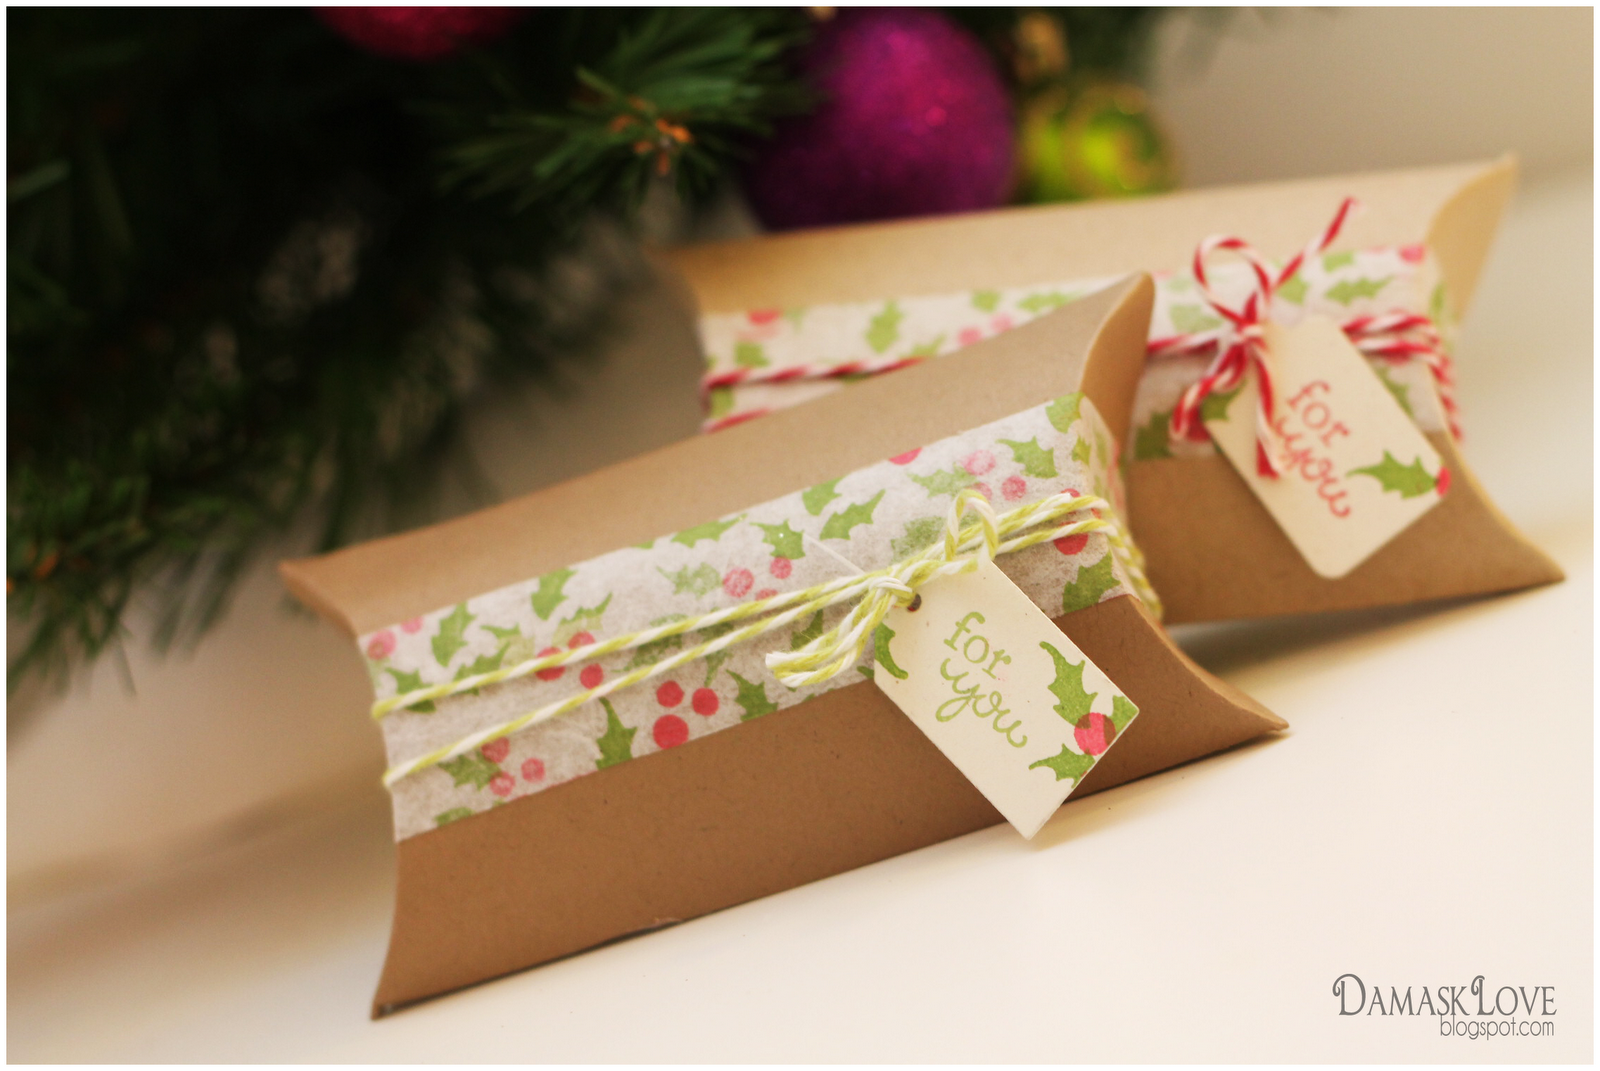 We offer a wide selection of bulk and discounted wrapping paper that will fit the theme for any occasion. Want to make sure your gift stands out from the crowd?